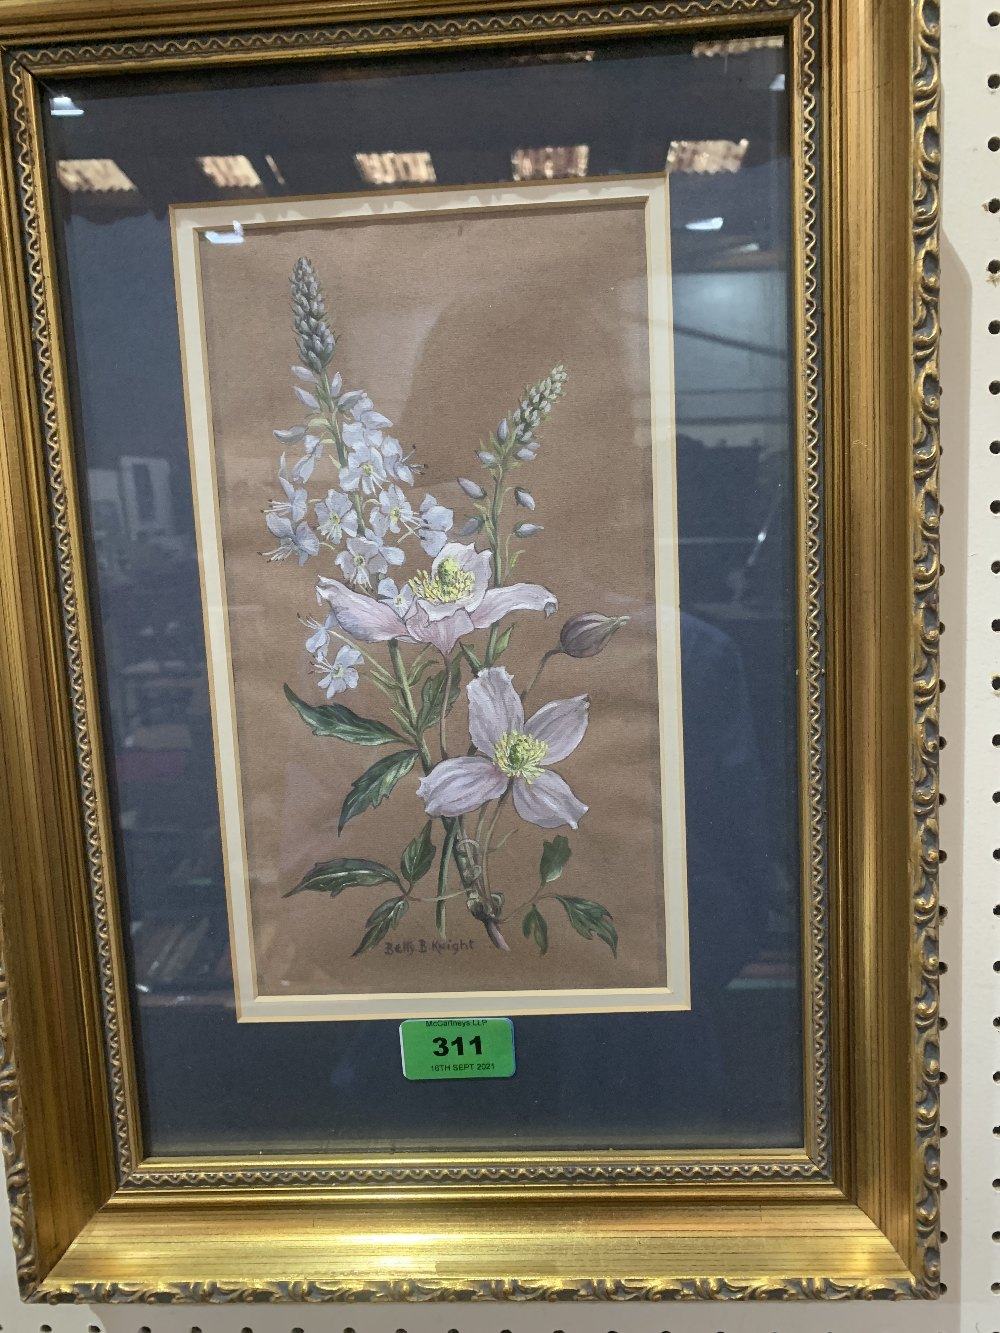 BETTY B. KNIGHT. BRITISH 20TH CENTURY Study of clematis and verbascam. Signed. Watercolour and